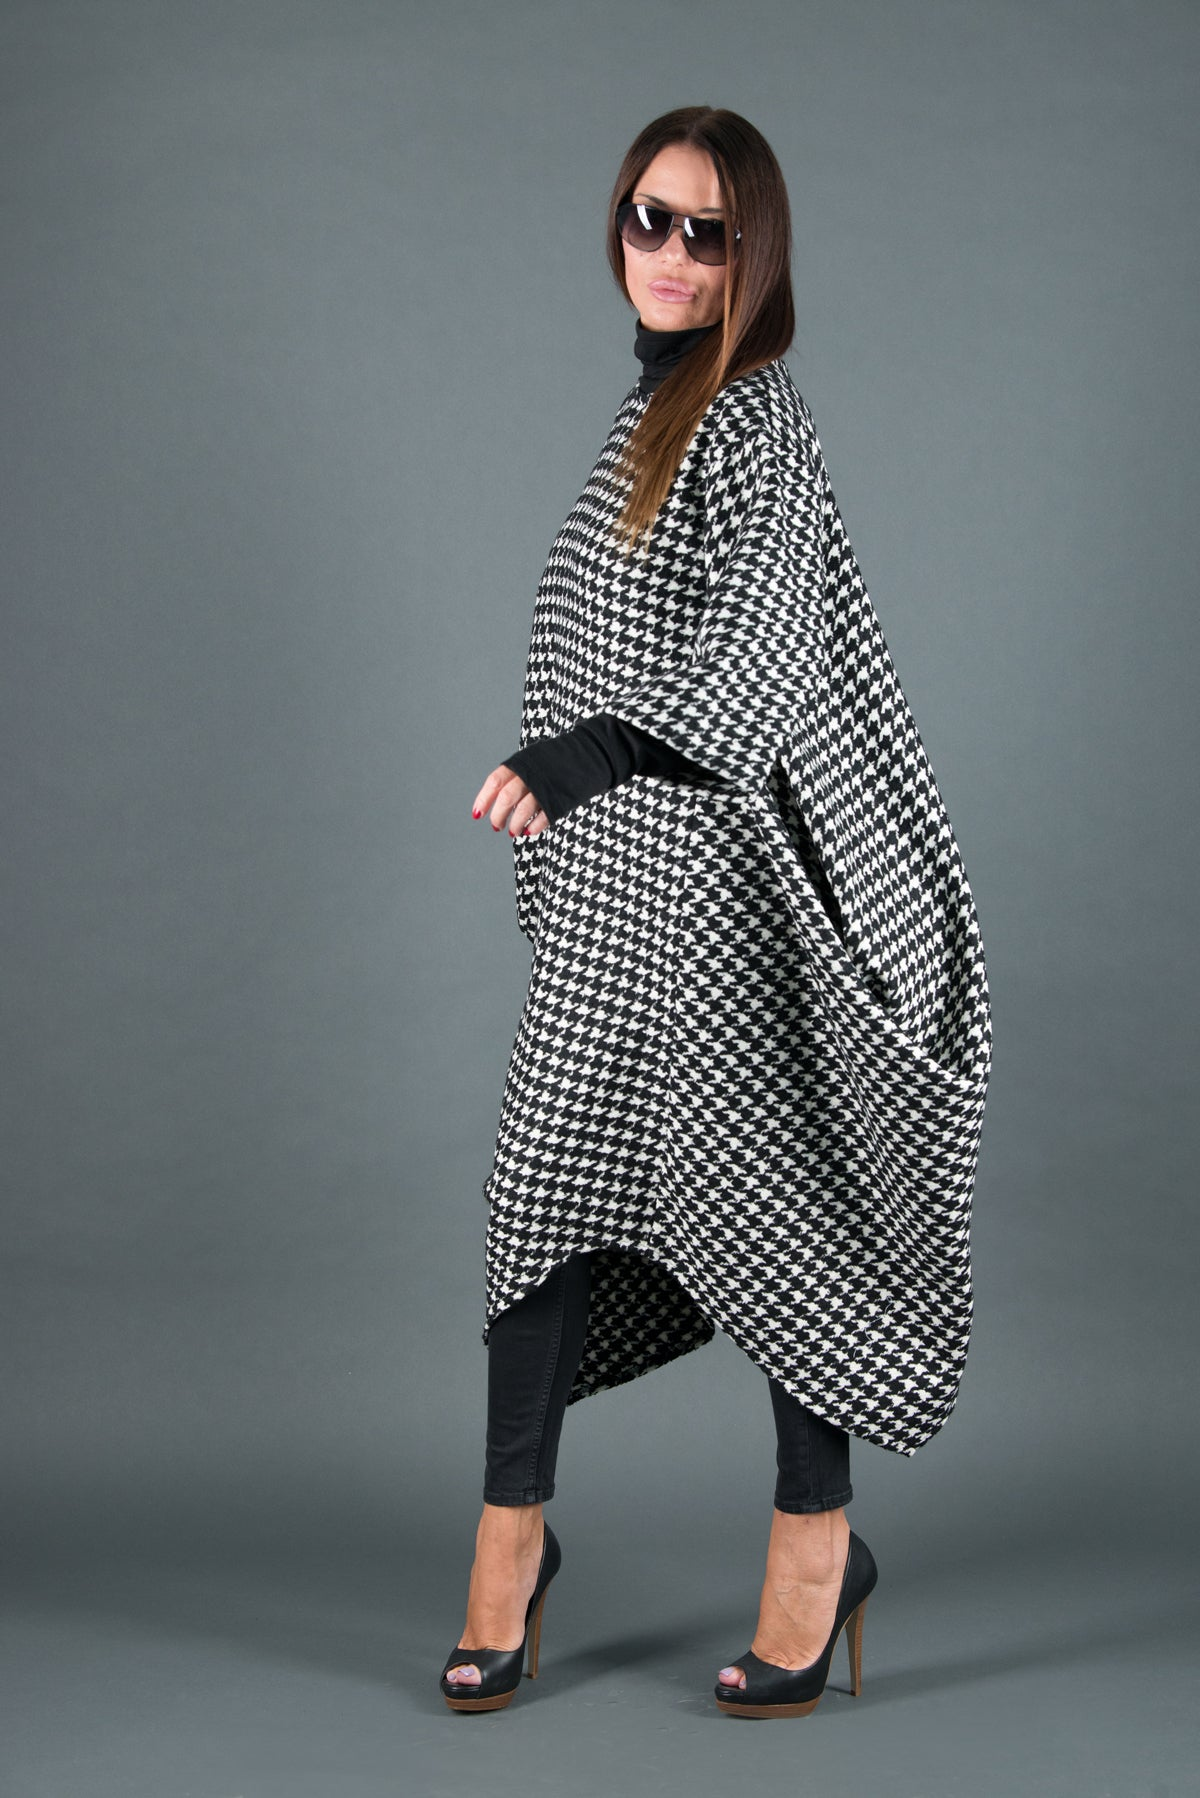 Autumn Winter Shepherd's Plaid Wool Dress, Dresses & Maxi Dresses